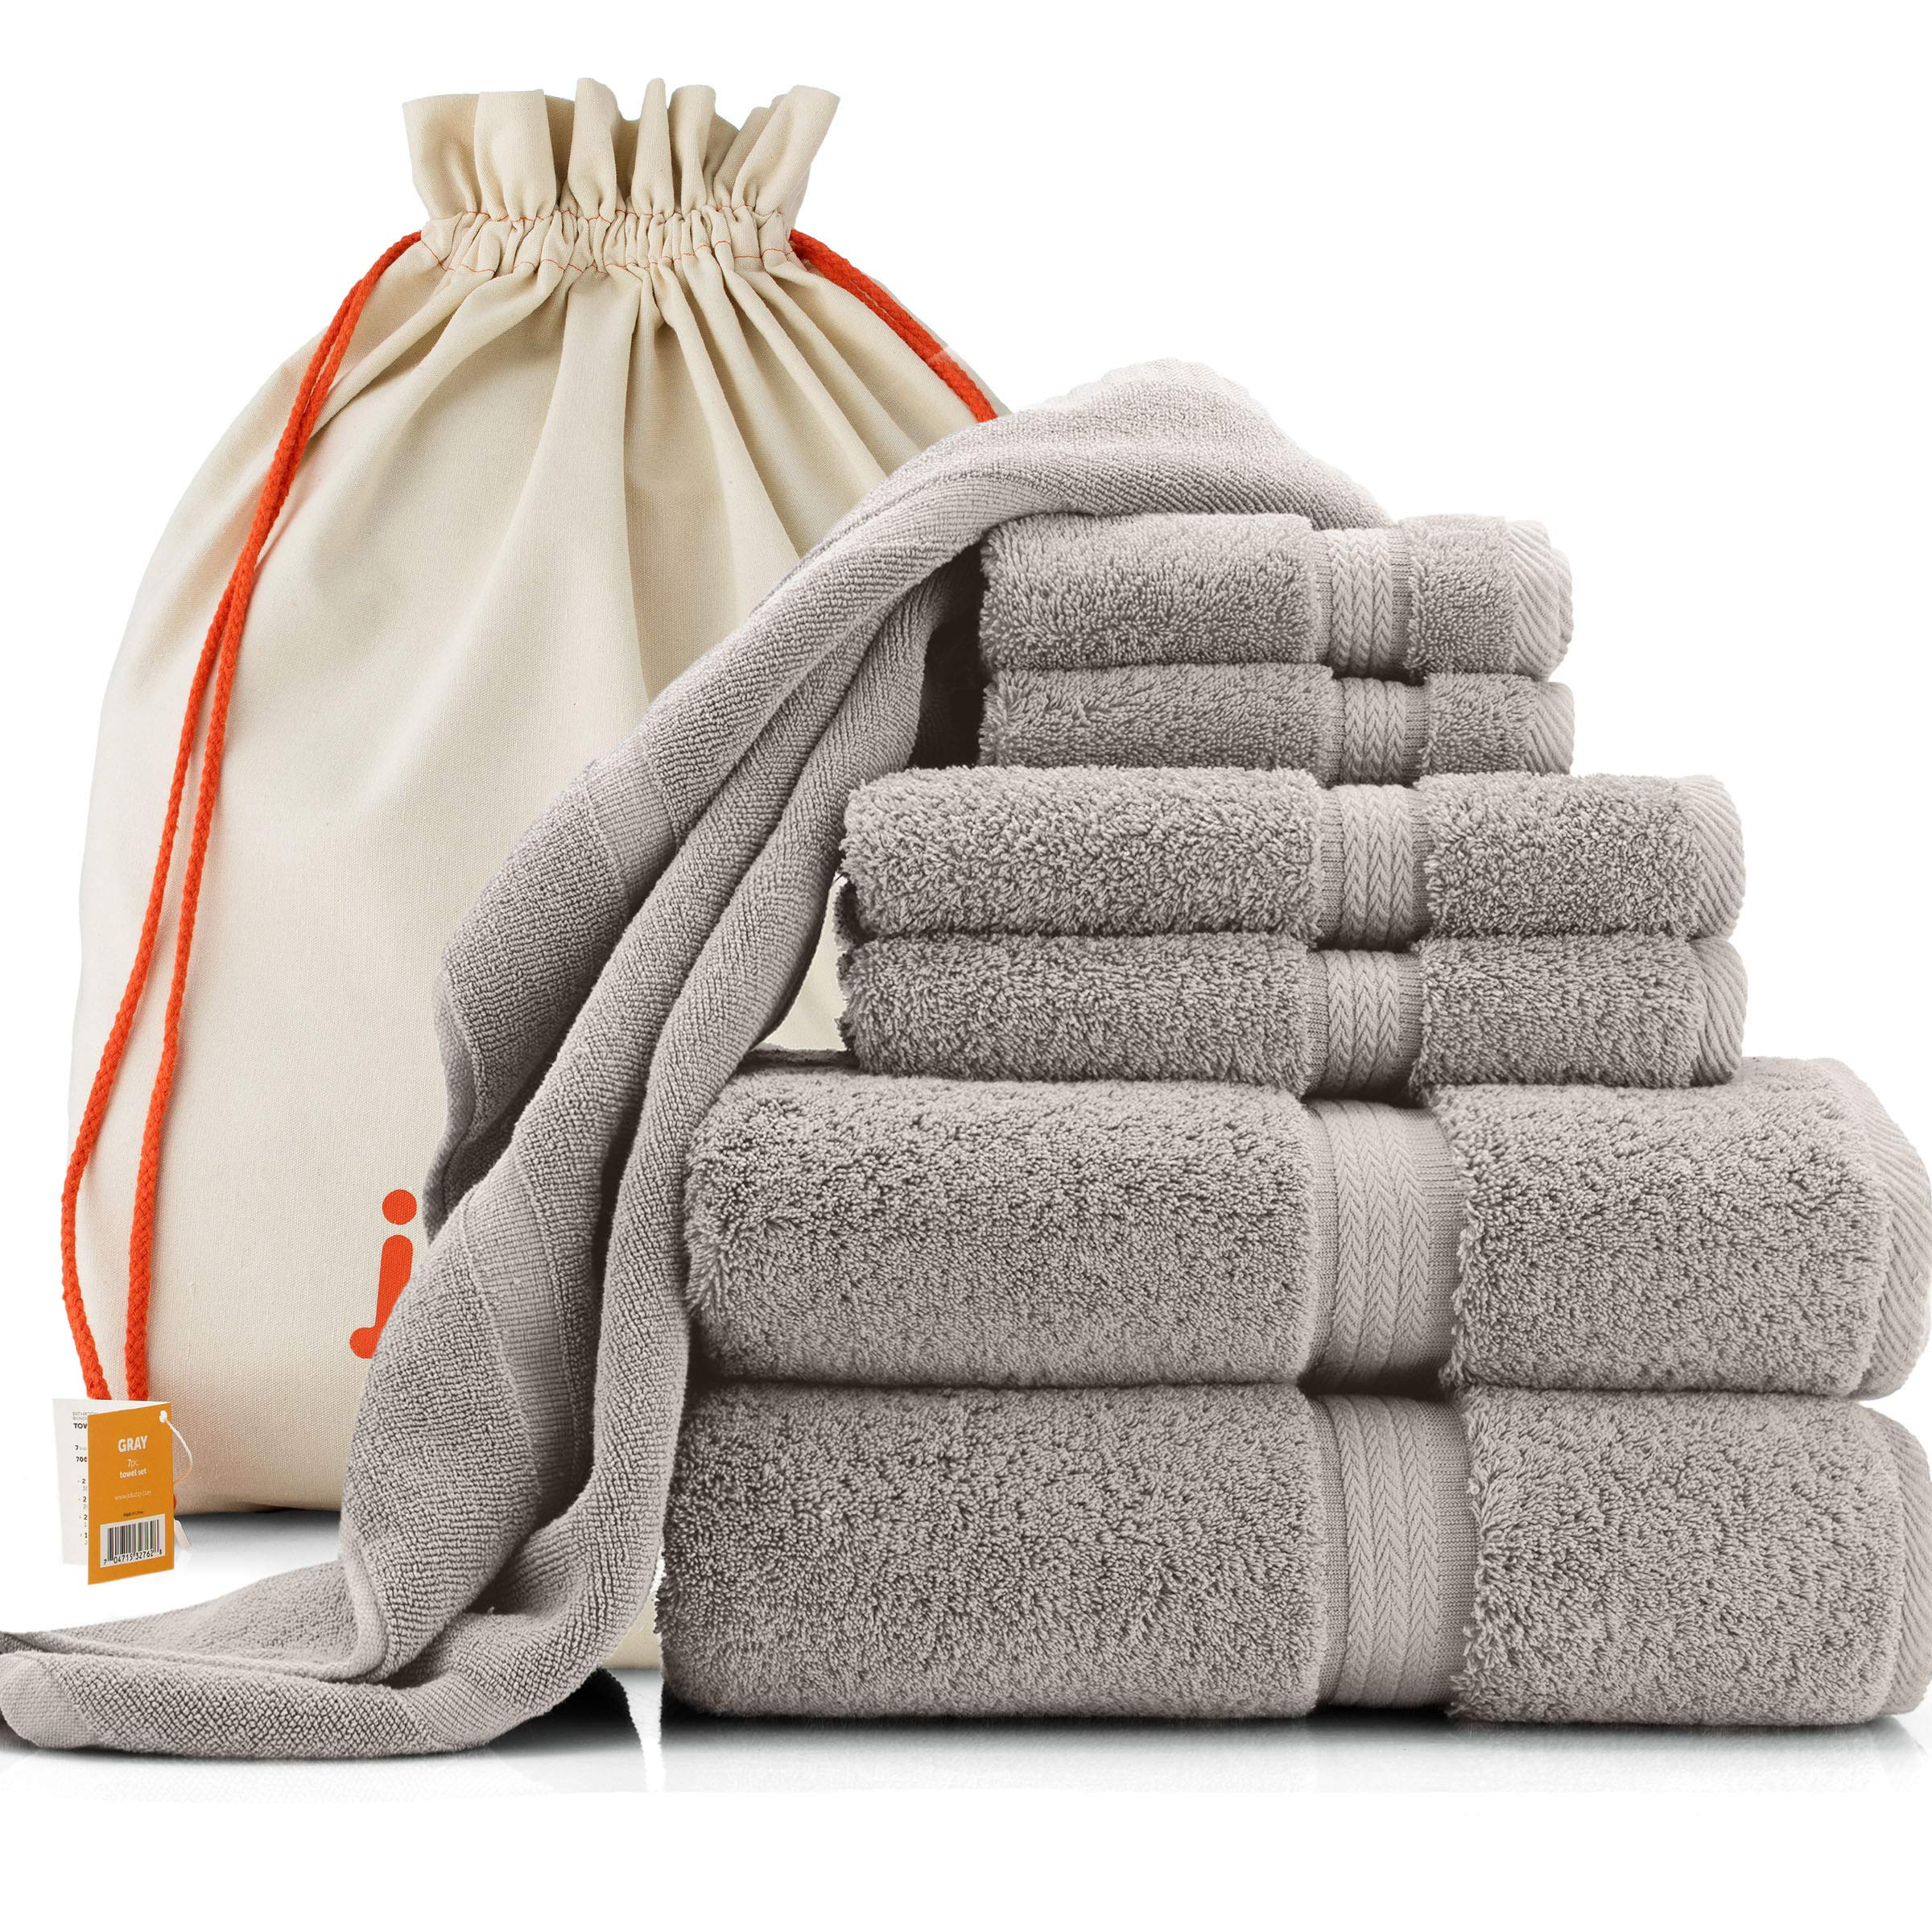 joluzzy Luxury 7-Pic Silver/Gray Towel Set - 100% Long-Staple Turkish Cotton - High Absorbent 700 GSM - Soft & Plush - Hotel Quality - 2 Bath Towels, 2 Hand Towels, 2 Face Towels, 1 Floor Mat by joluzzy